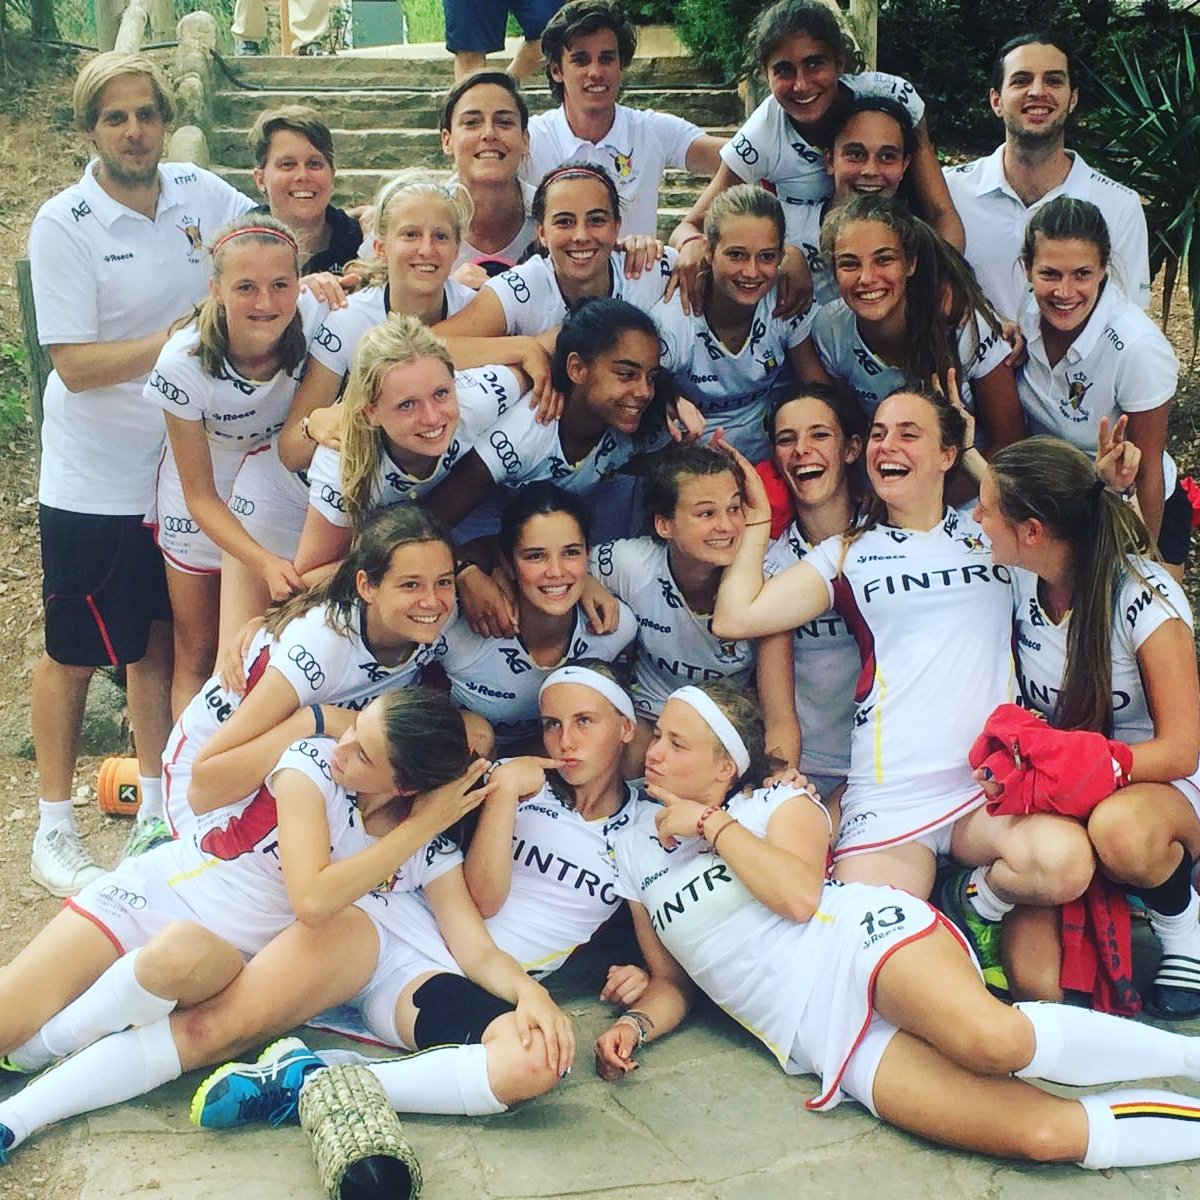 On this last day in Terrassa, the BeGold U18 Girls have won from England 2-1 ! Well done girls  #begold #beleng #terrassa #6nations #hockey<br>http://pic.twitter.com/Ip0ti8nLyF